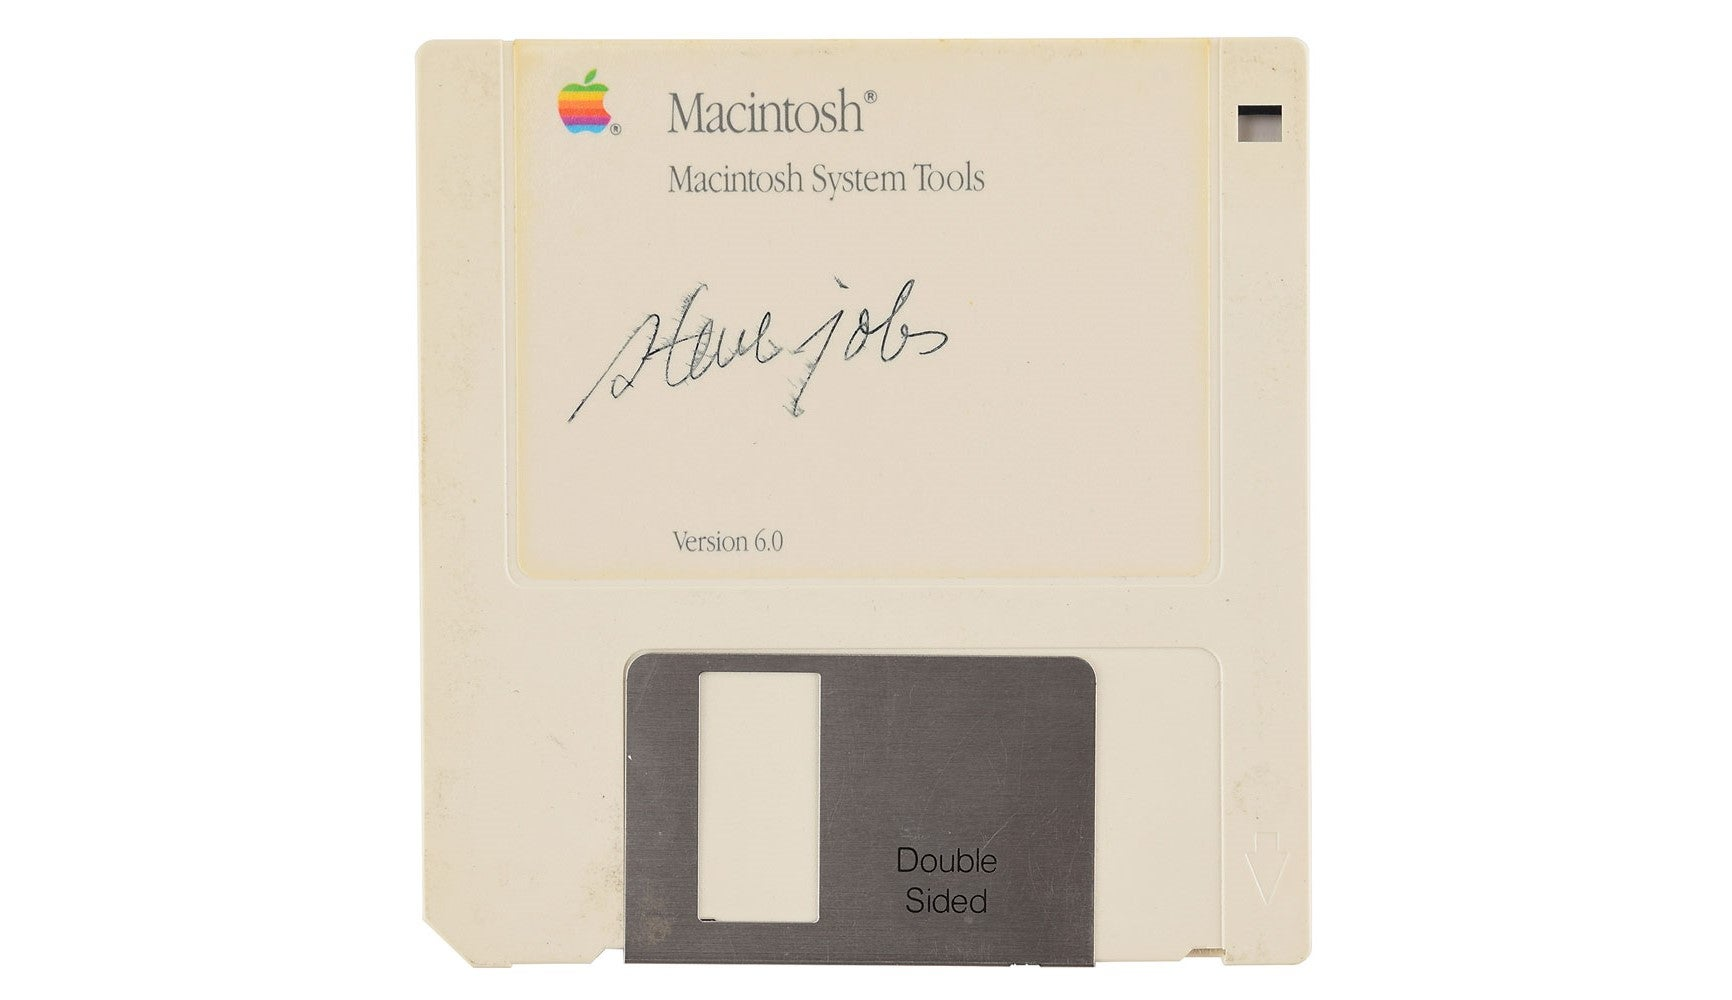 A floppy disk signed by Steve Jobs is currently selling for $8000